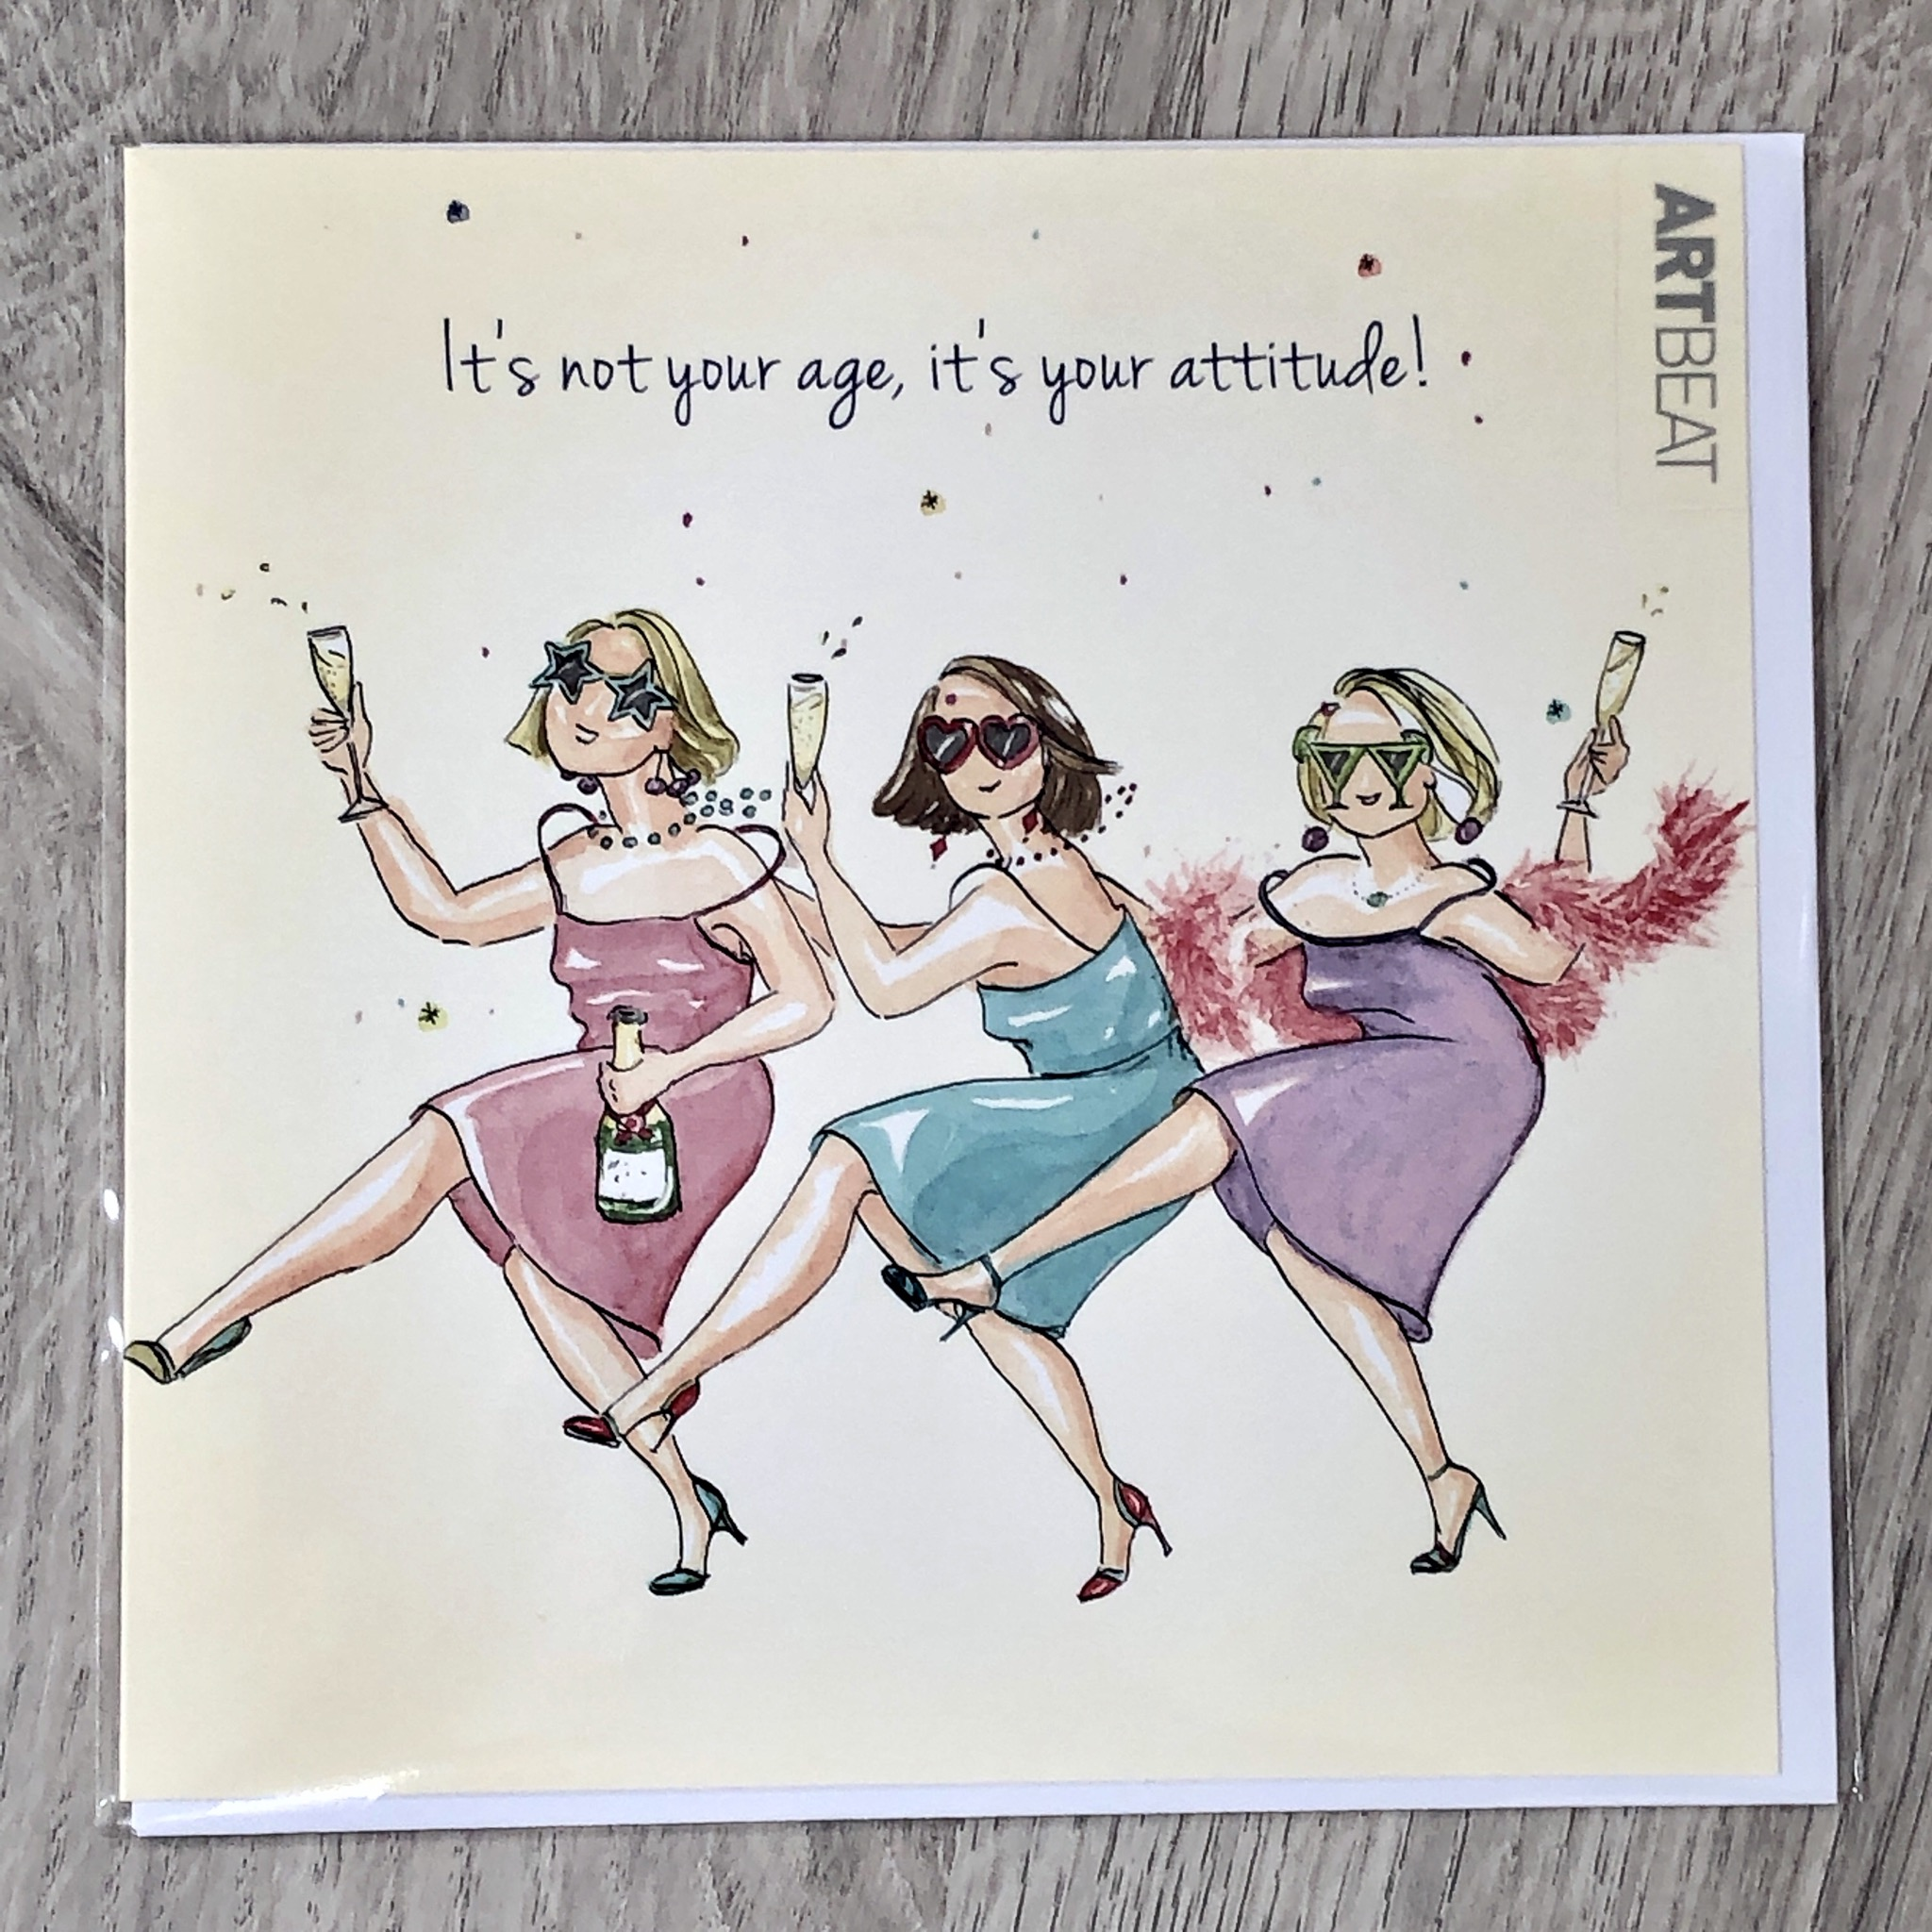 Birthday card- it's not you age, it's your attitude!